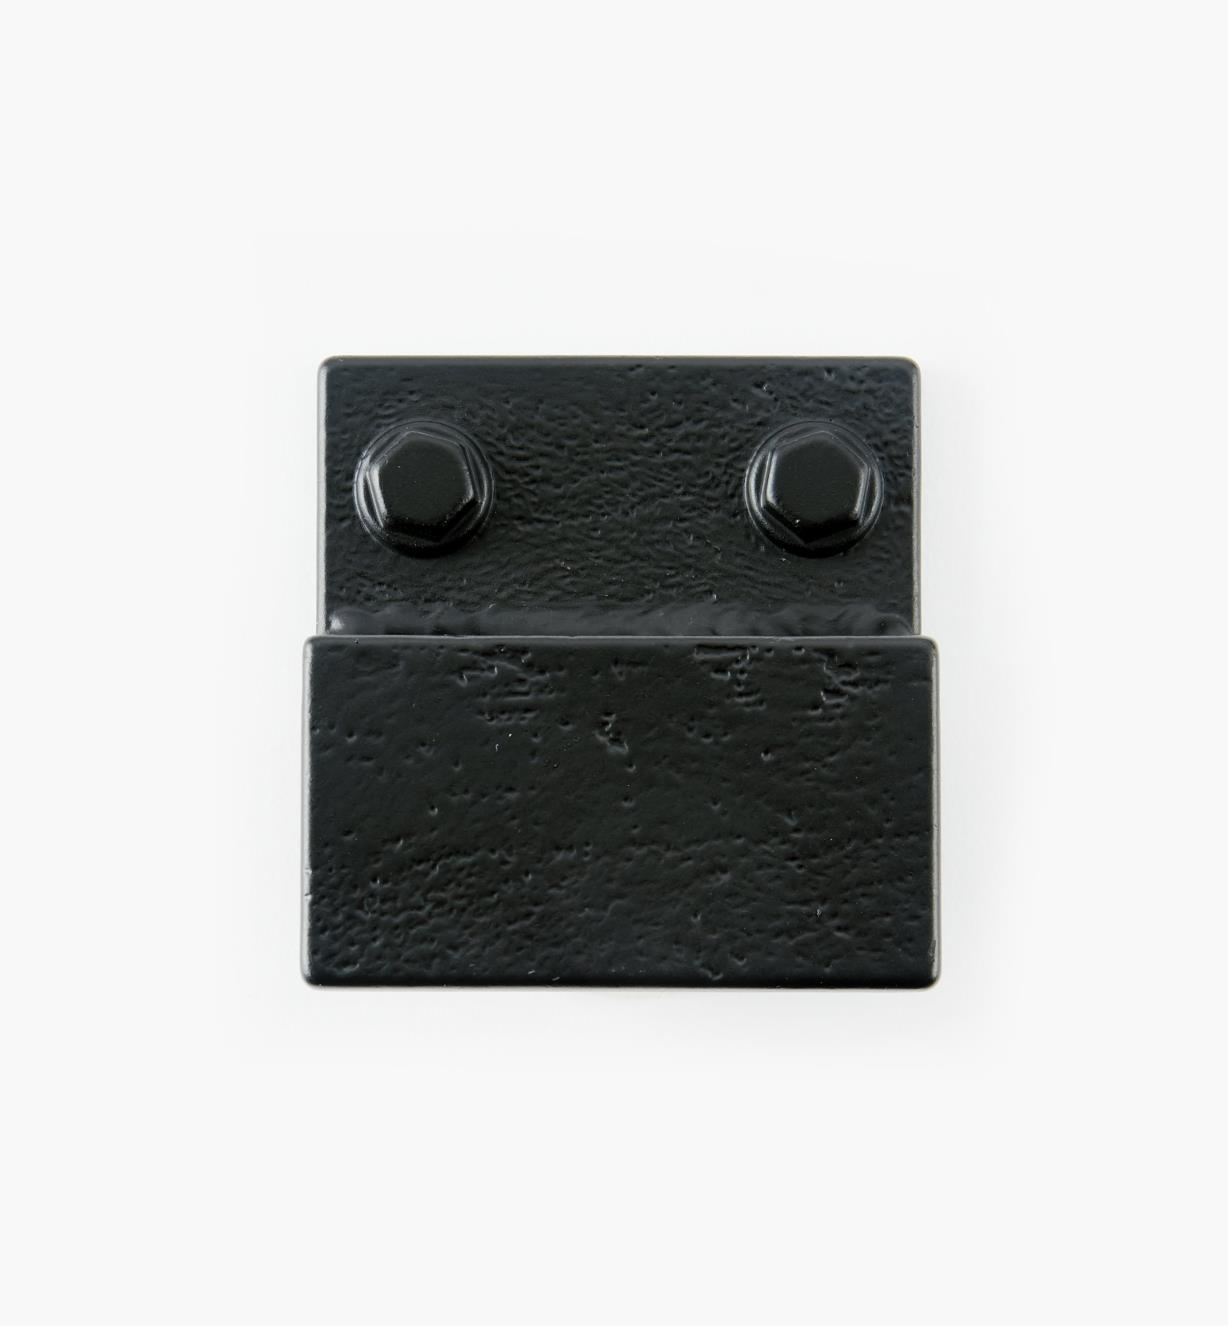 00A7826 - Factory Hardware 32mm Blackened Iron Pull, each